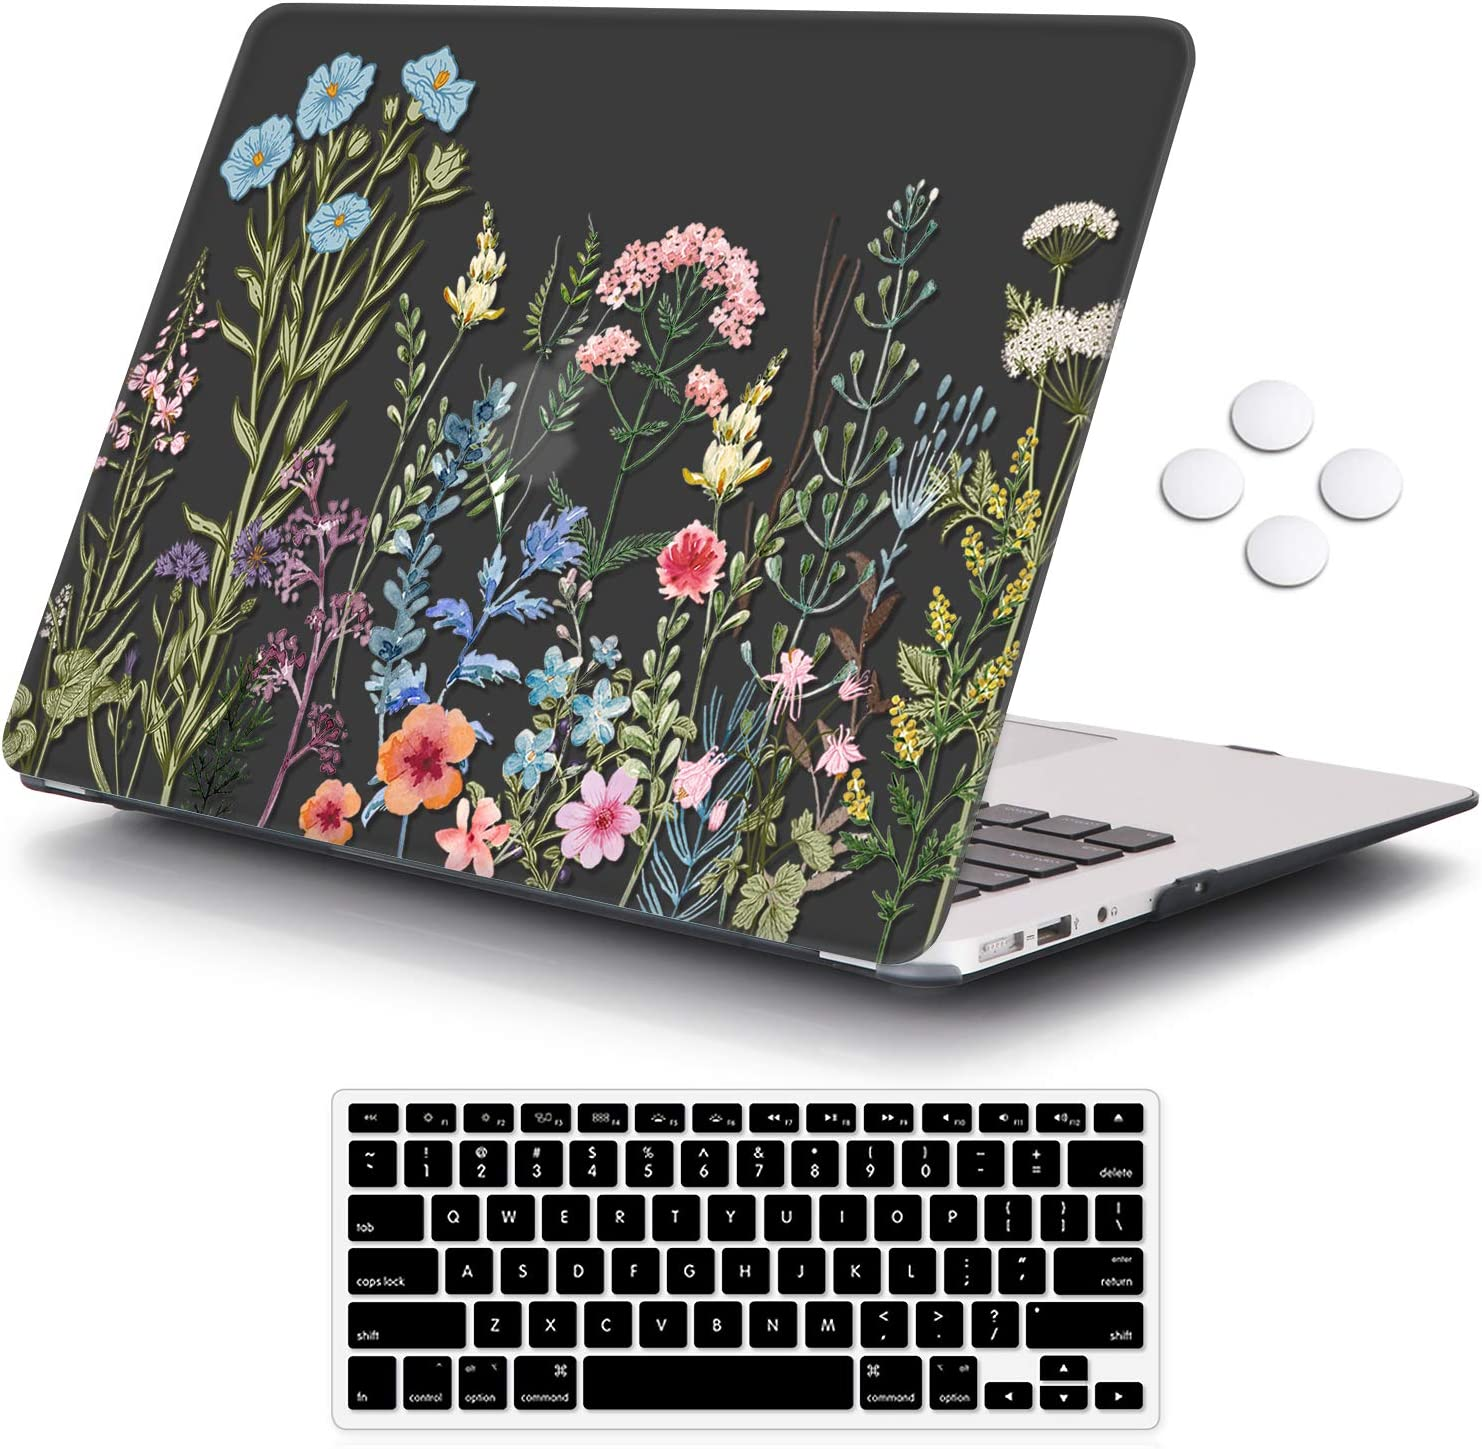 iCasso MacBook Air 13 inch Case (Release 2010-2017 Older Version), Plastic Pattern Hard Shell Protective Case & Keyboard Cover Only Compatible with MacBook Air 13 Inch Model A1369/A1466 - Weeds